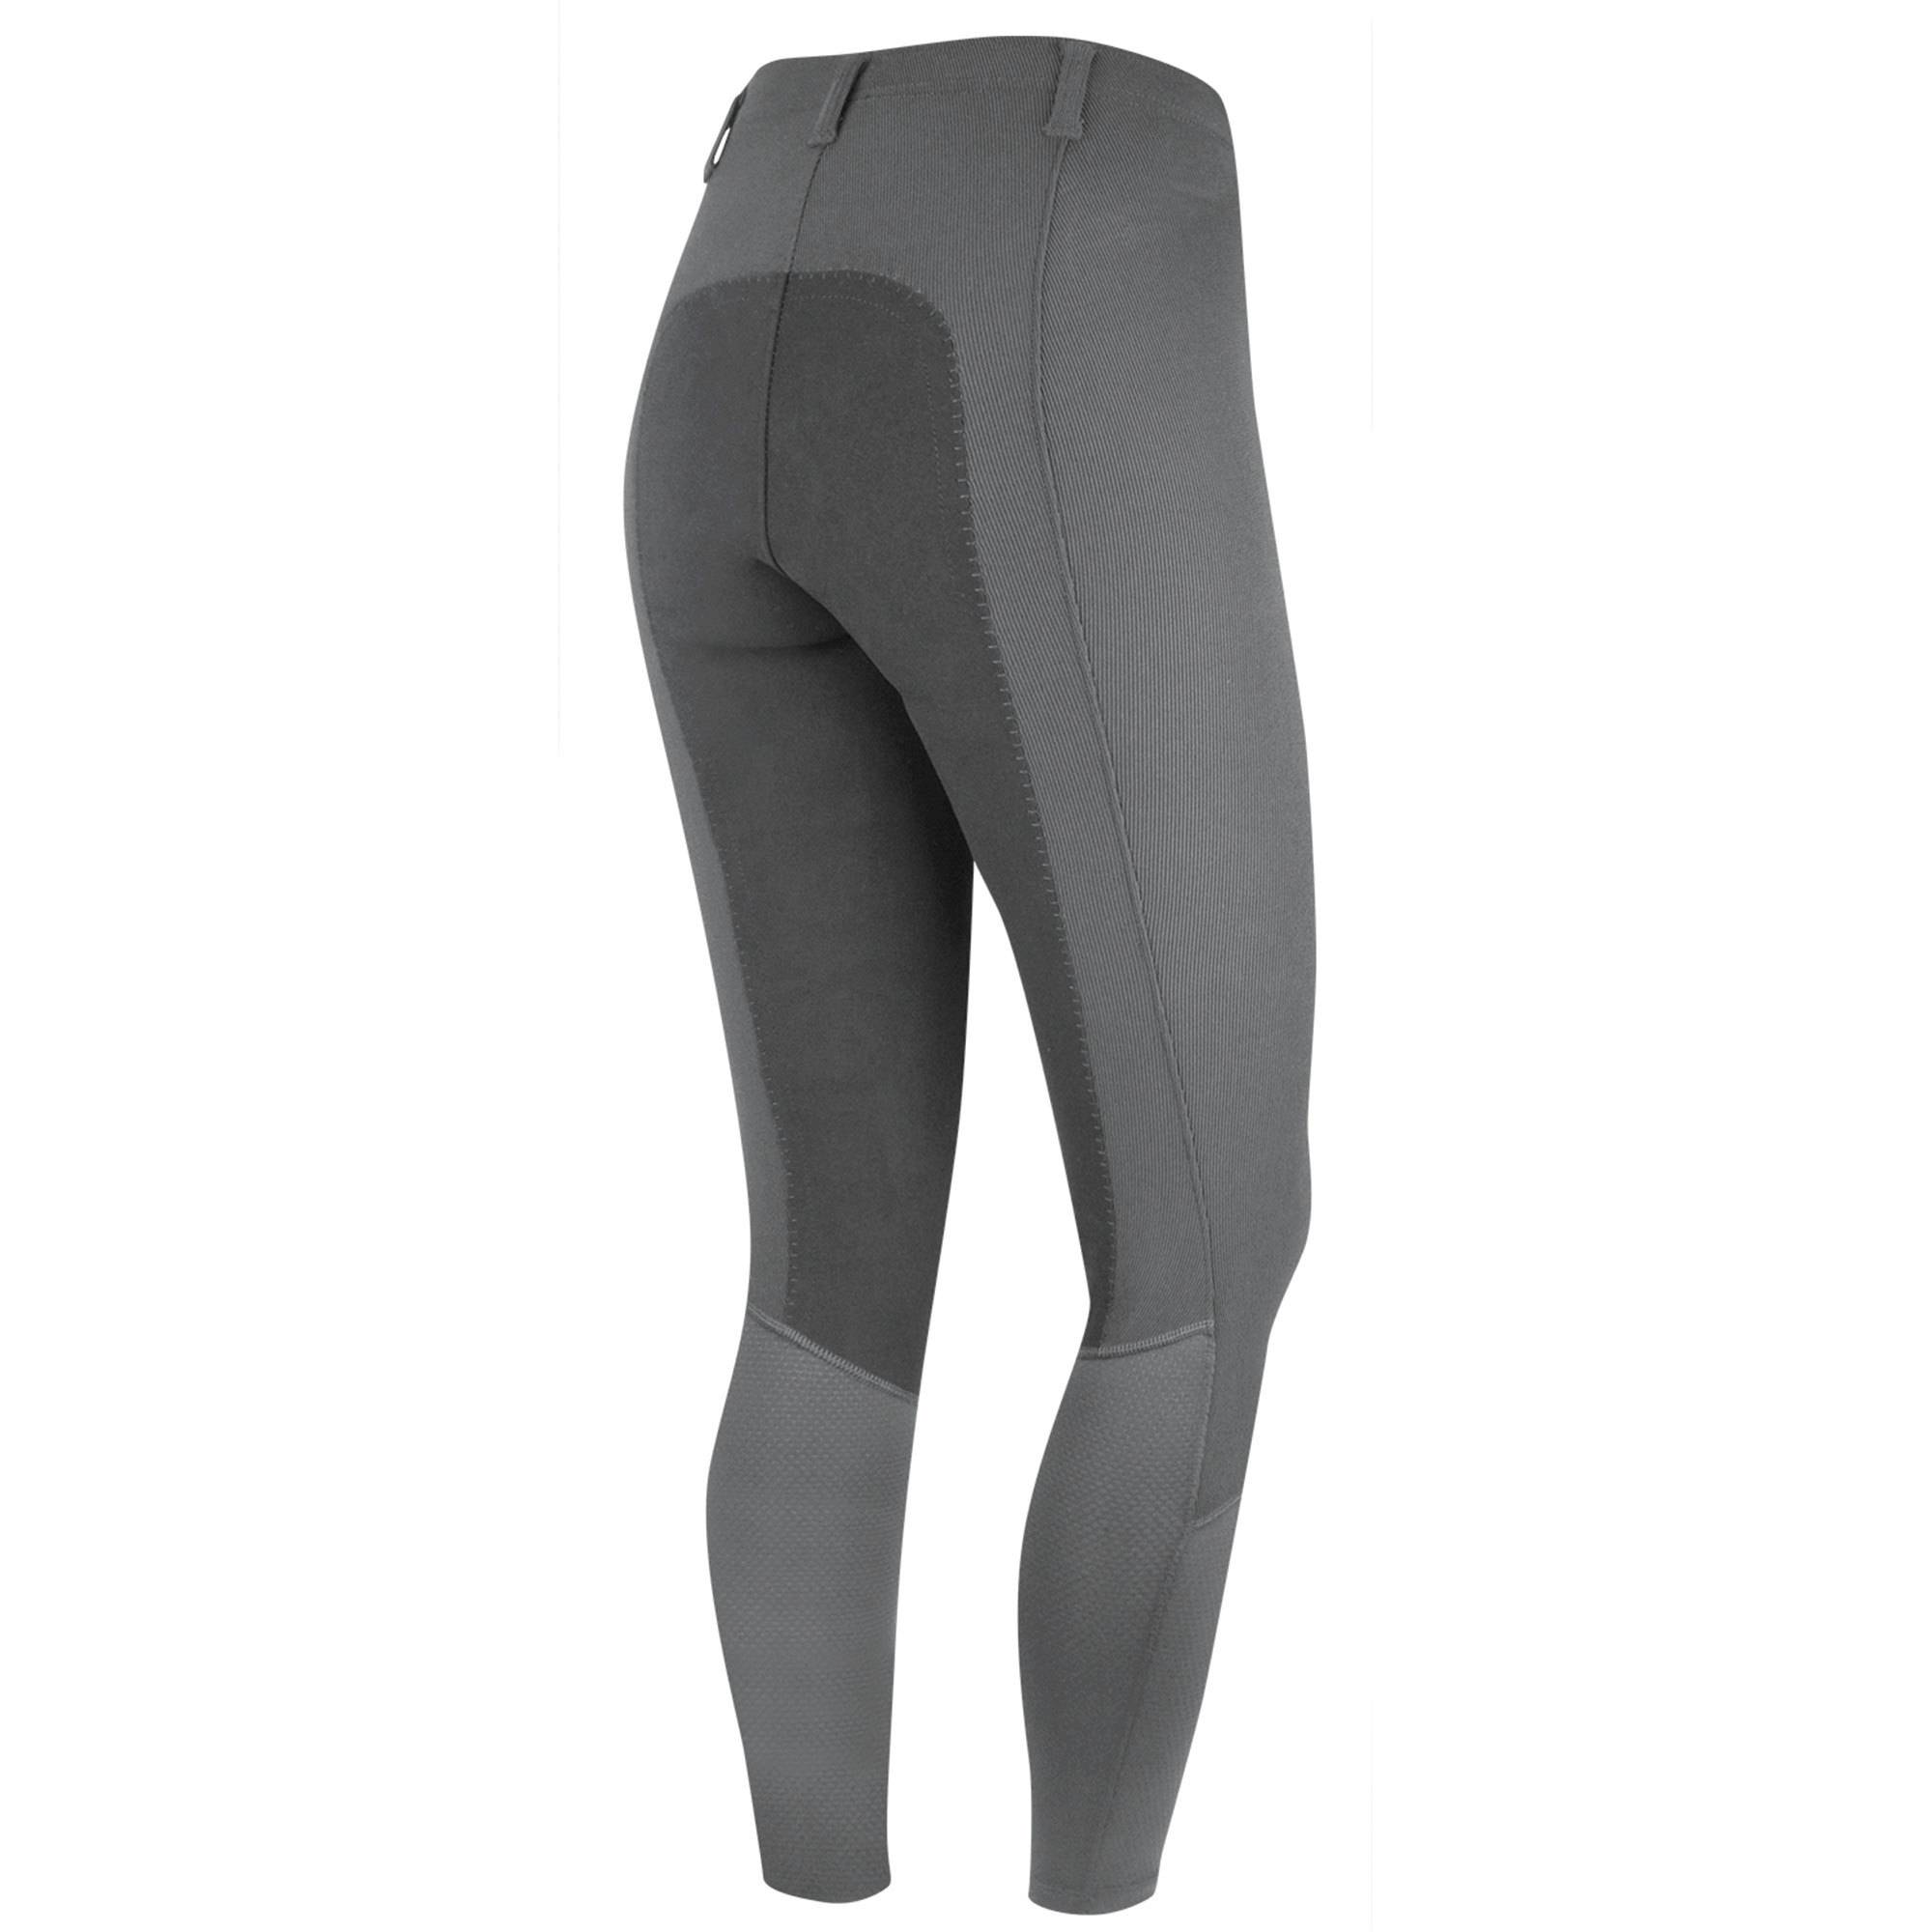 Outlet - Irideon Cadence Chausette Breeches - Ladies, Full Seat, X-Large, Dove Grey